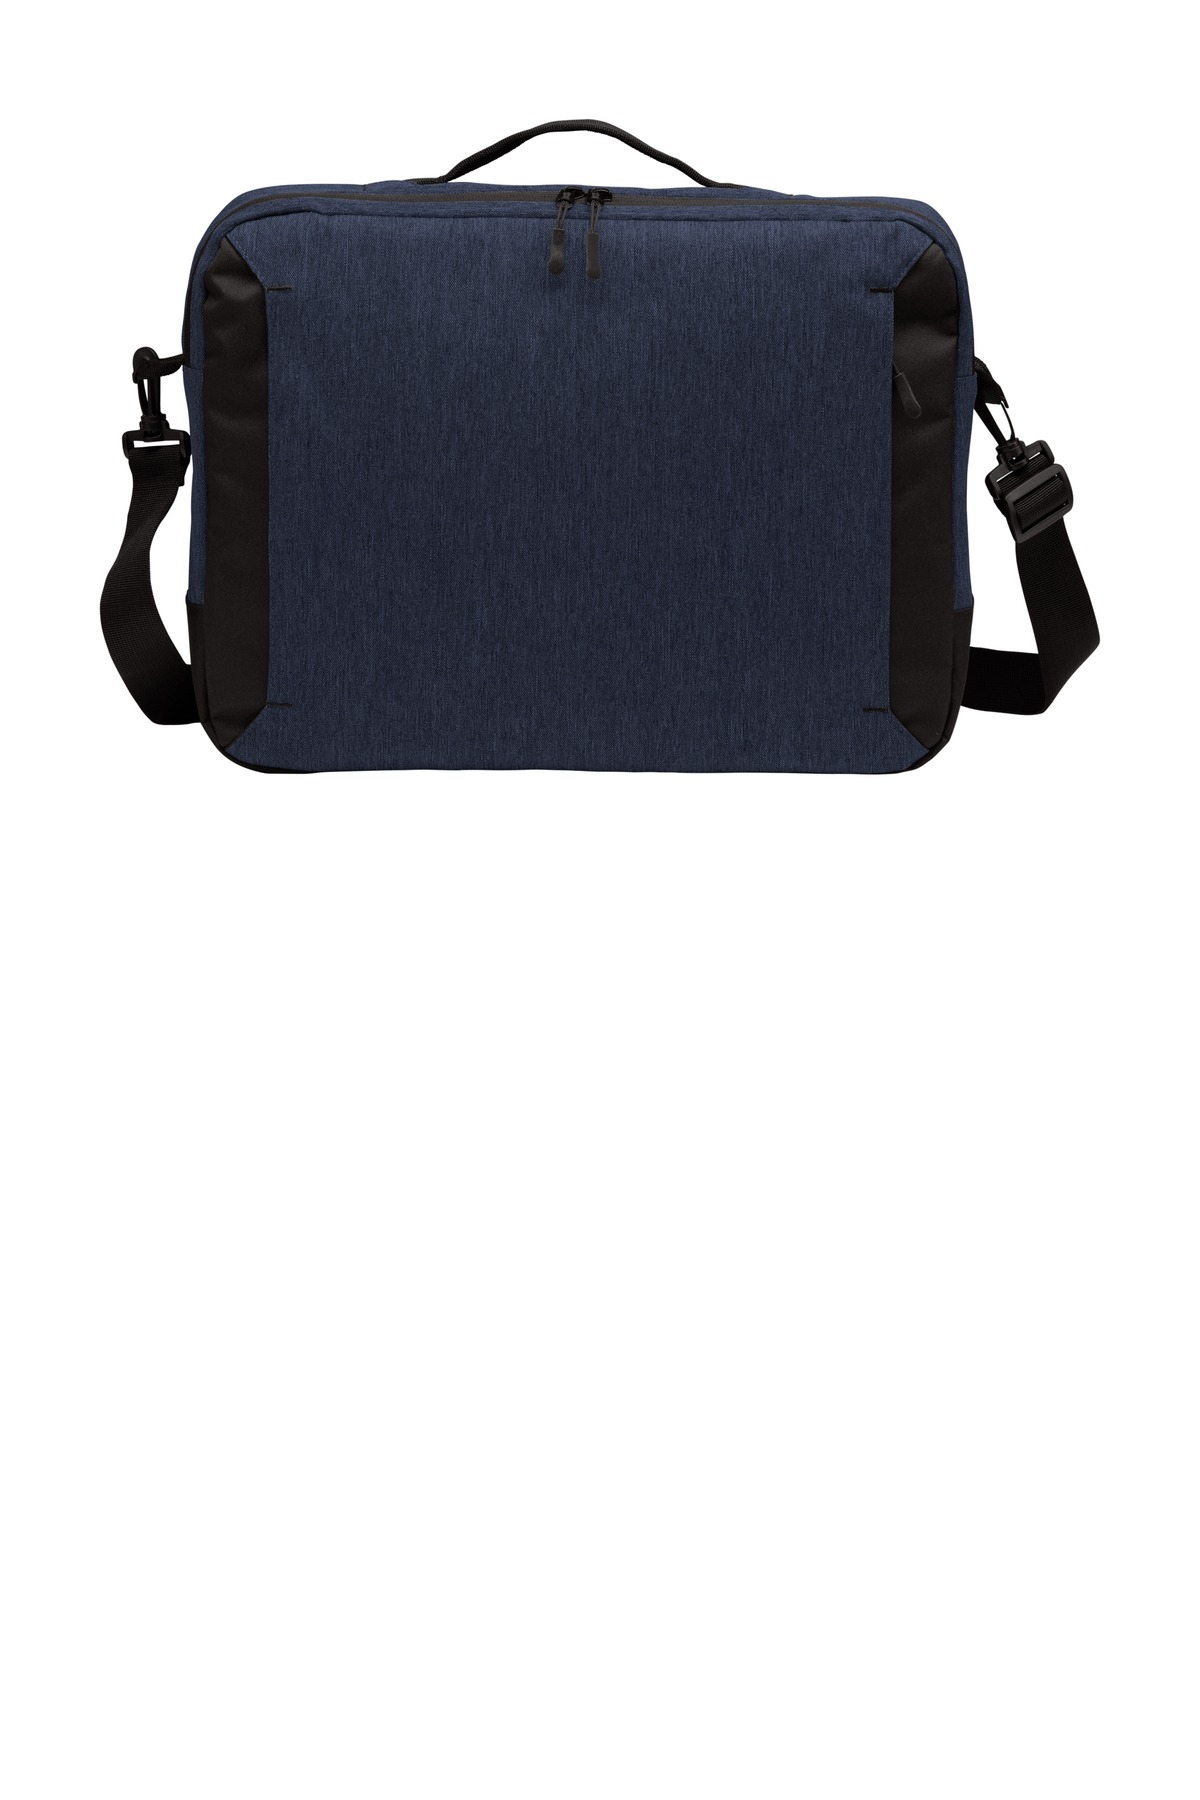 Port Authority  ®  Vector Briefcase. BG309 - Navy Heather